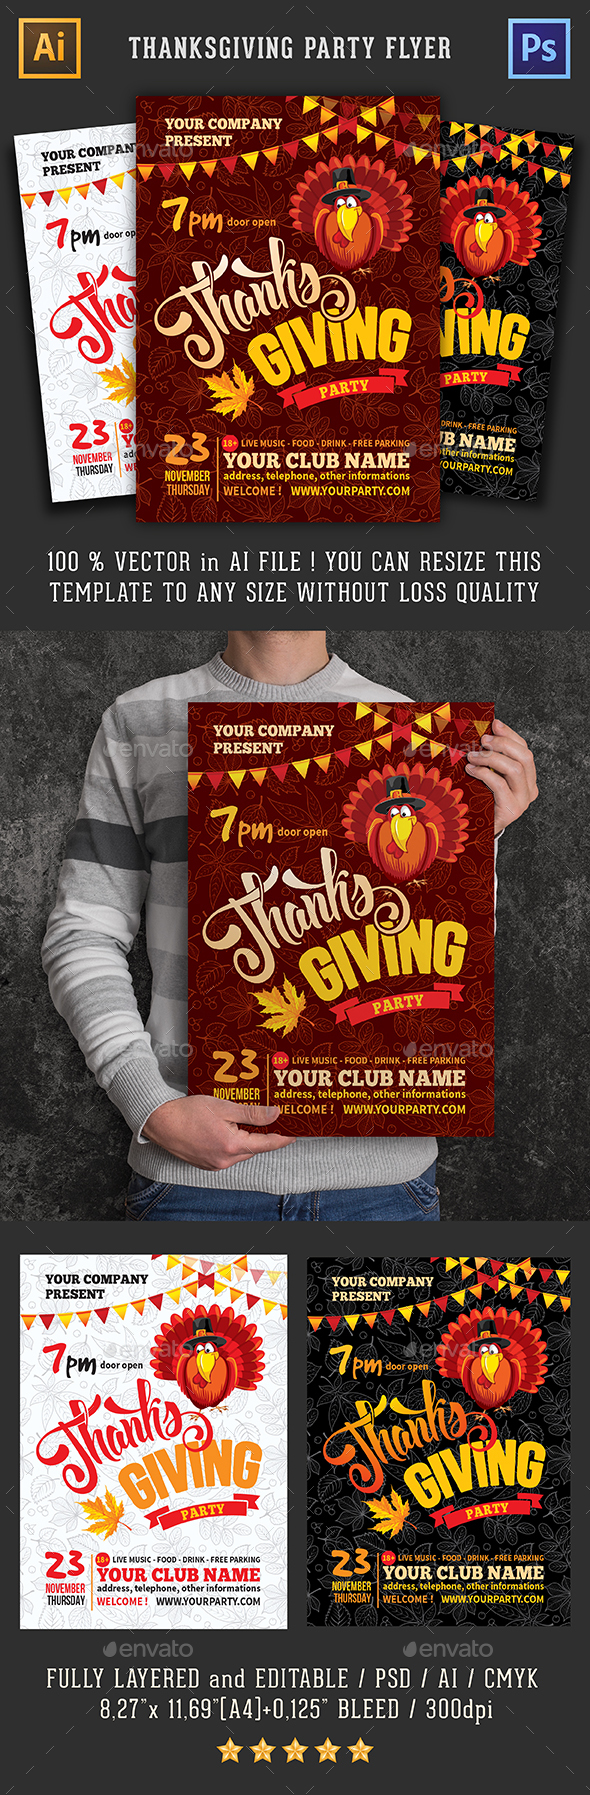 GraphicRiver Template For Thanksgiving Party Flyer 20826588